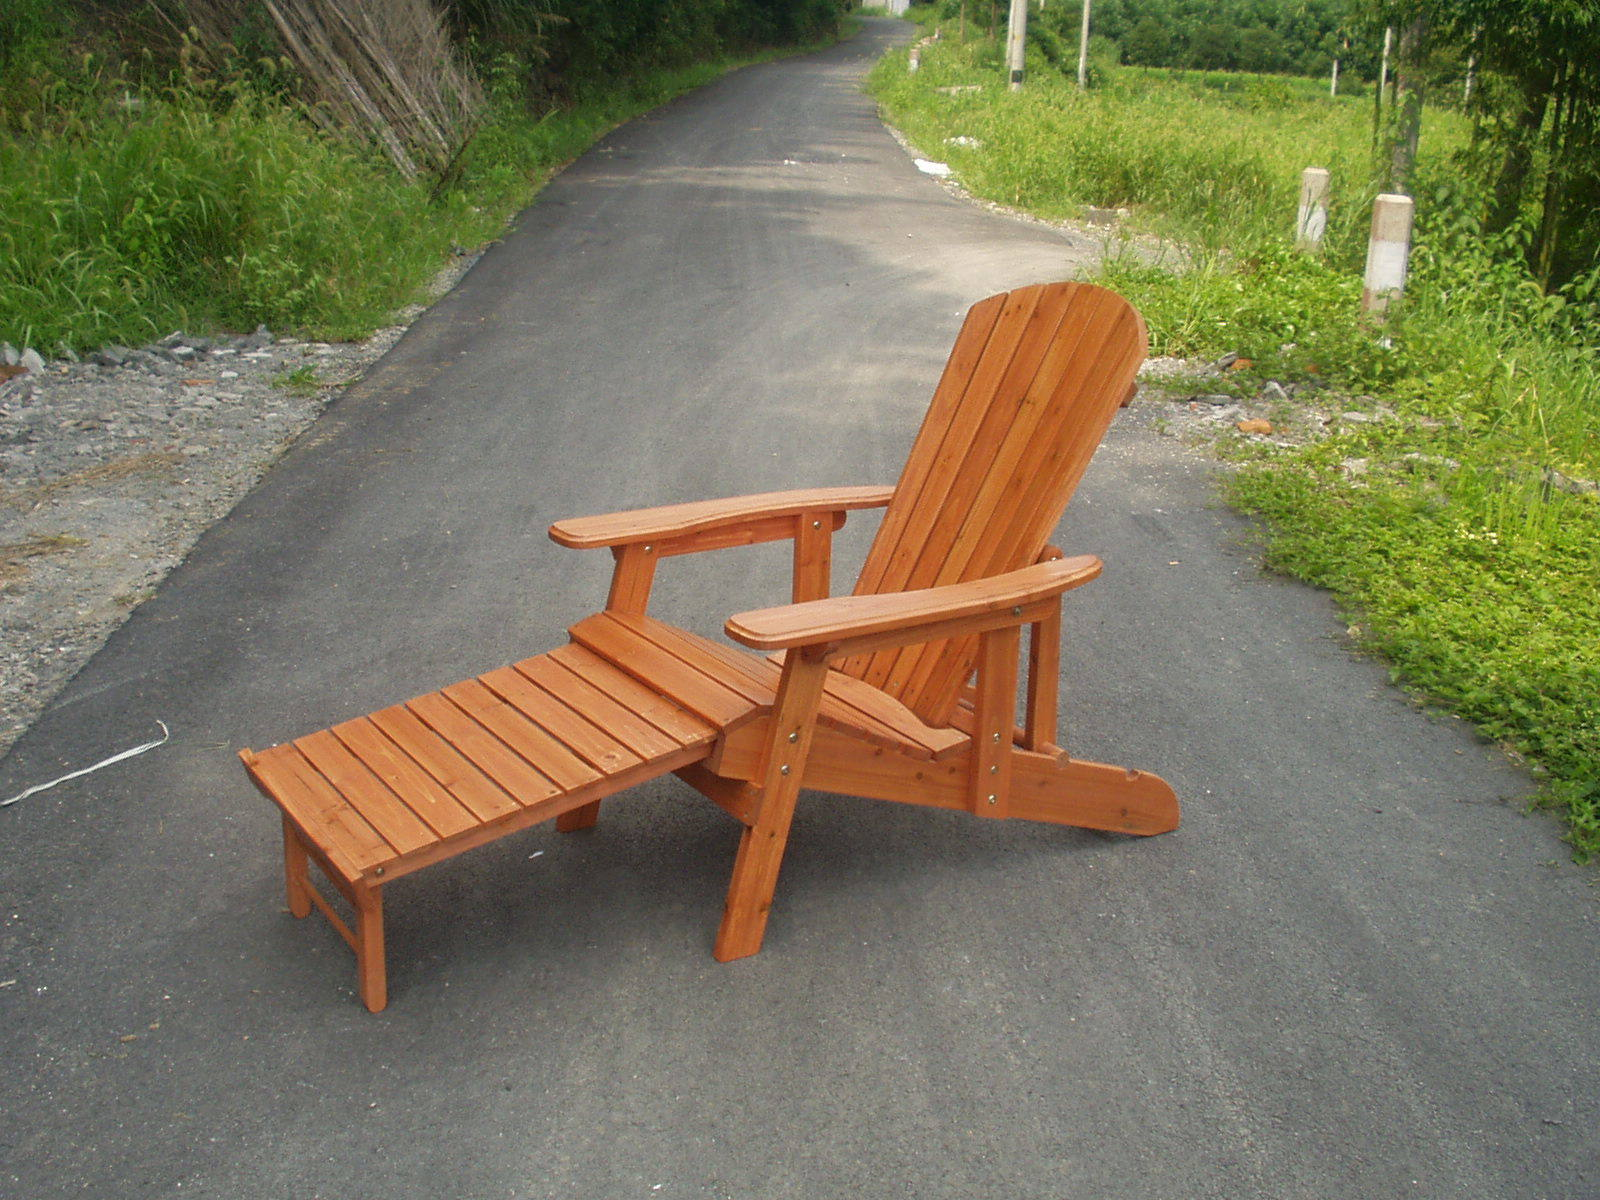 International Outdoor Adirondack Chair Recliners with Footrest Brown